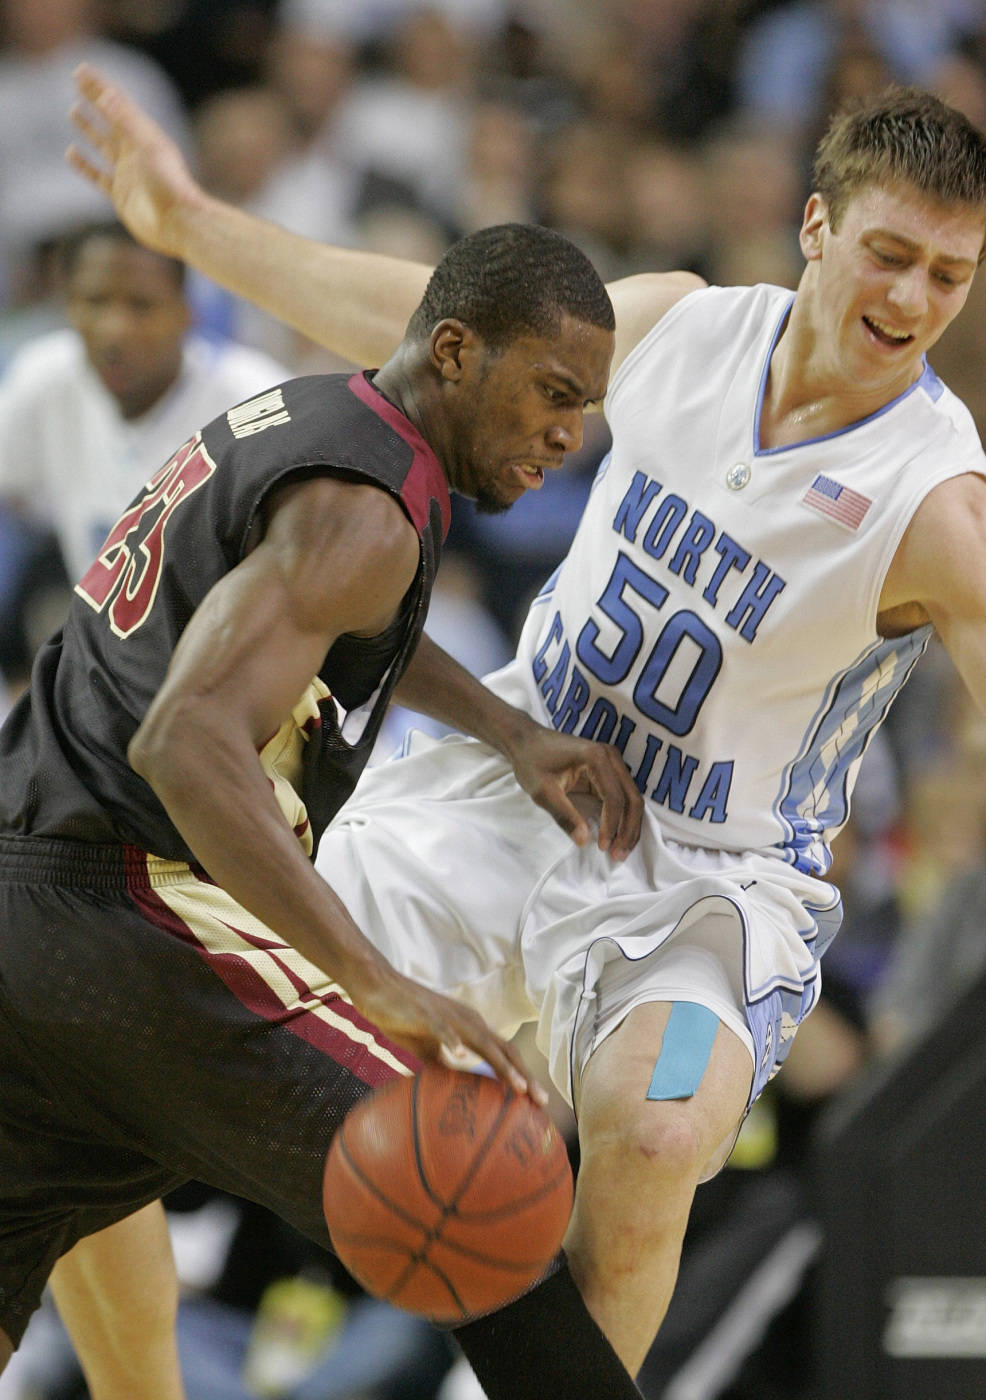 Florida State guard Toney Douglas (23) runs into North Carolina forward Tyler Hansbrough (50) in second half action during an NCAA college basketball game in the semifinals of the Atlantic Coast Conference men's tournament in Atlanta, Saturday, March 14, 2009. (AP Photo/Dave Martin)